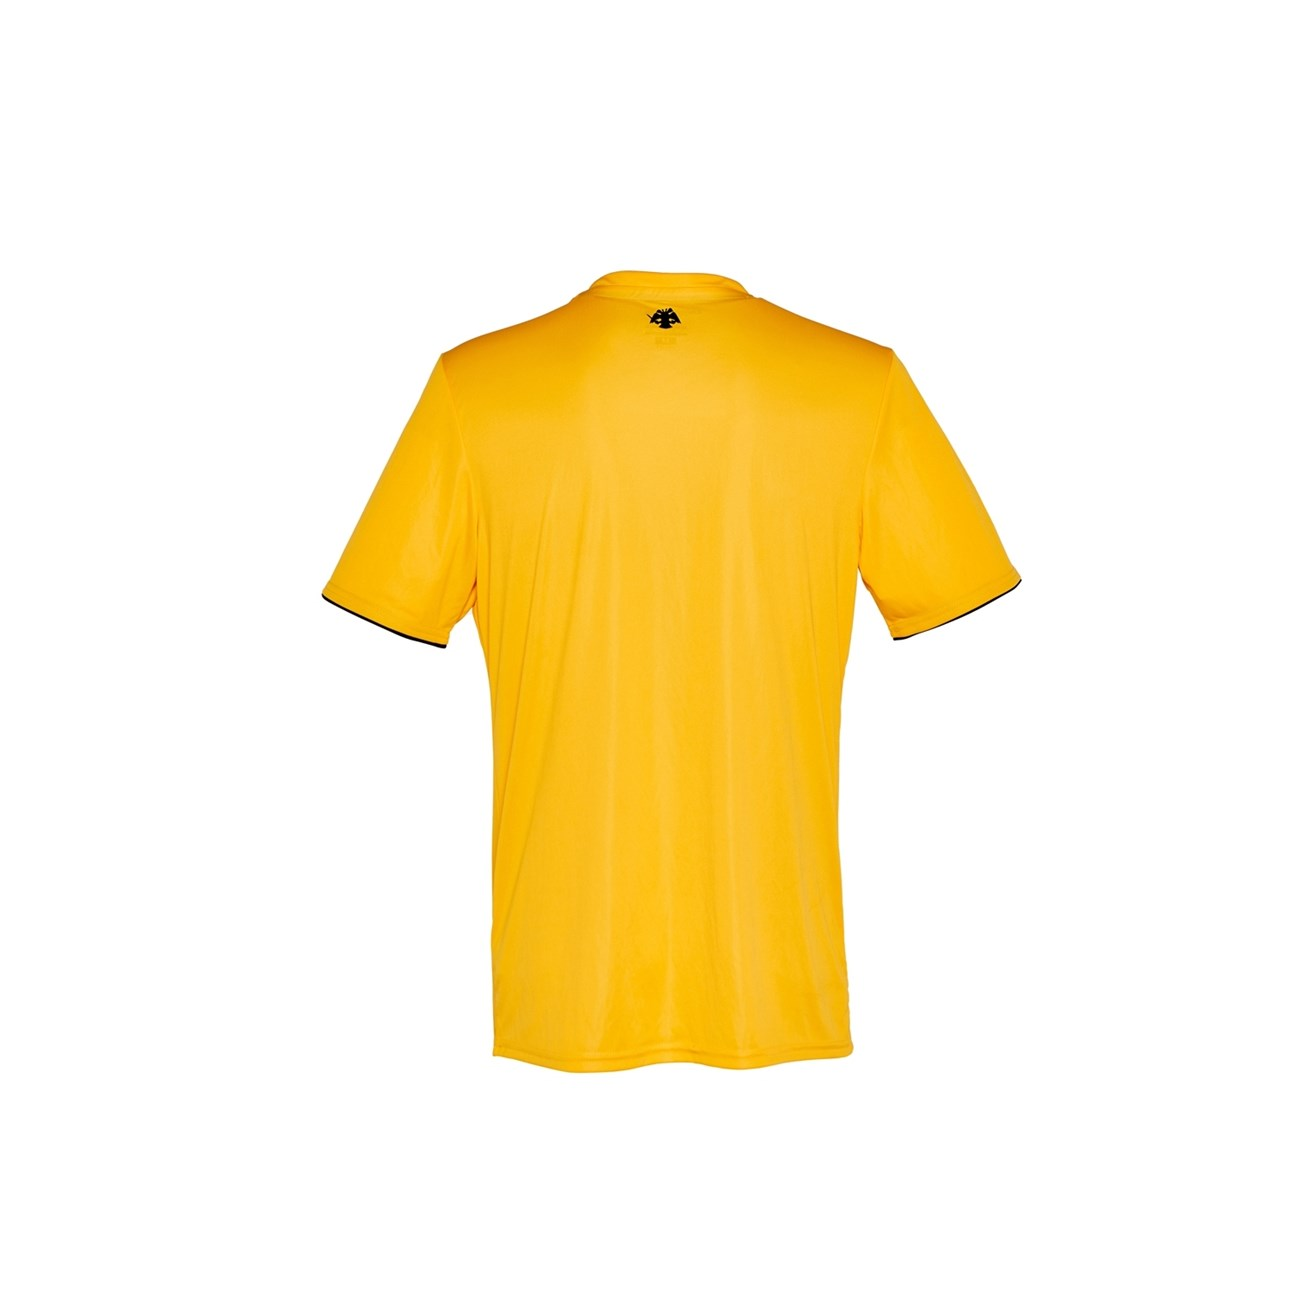 AEK - Youth Brooklyn Home Jersey